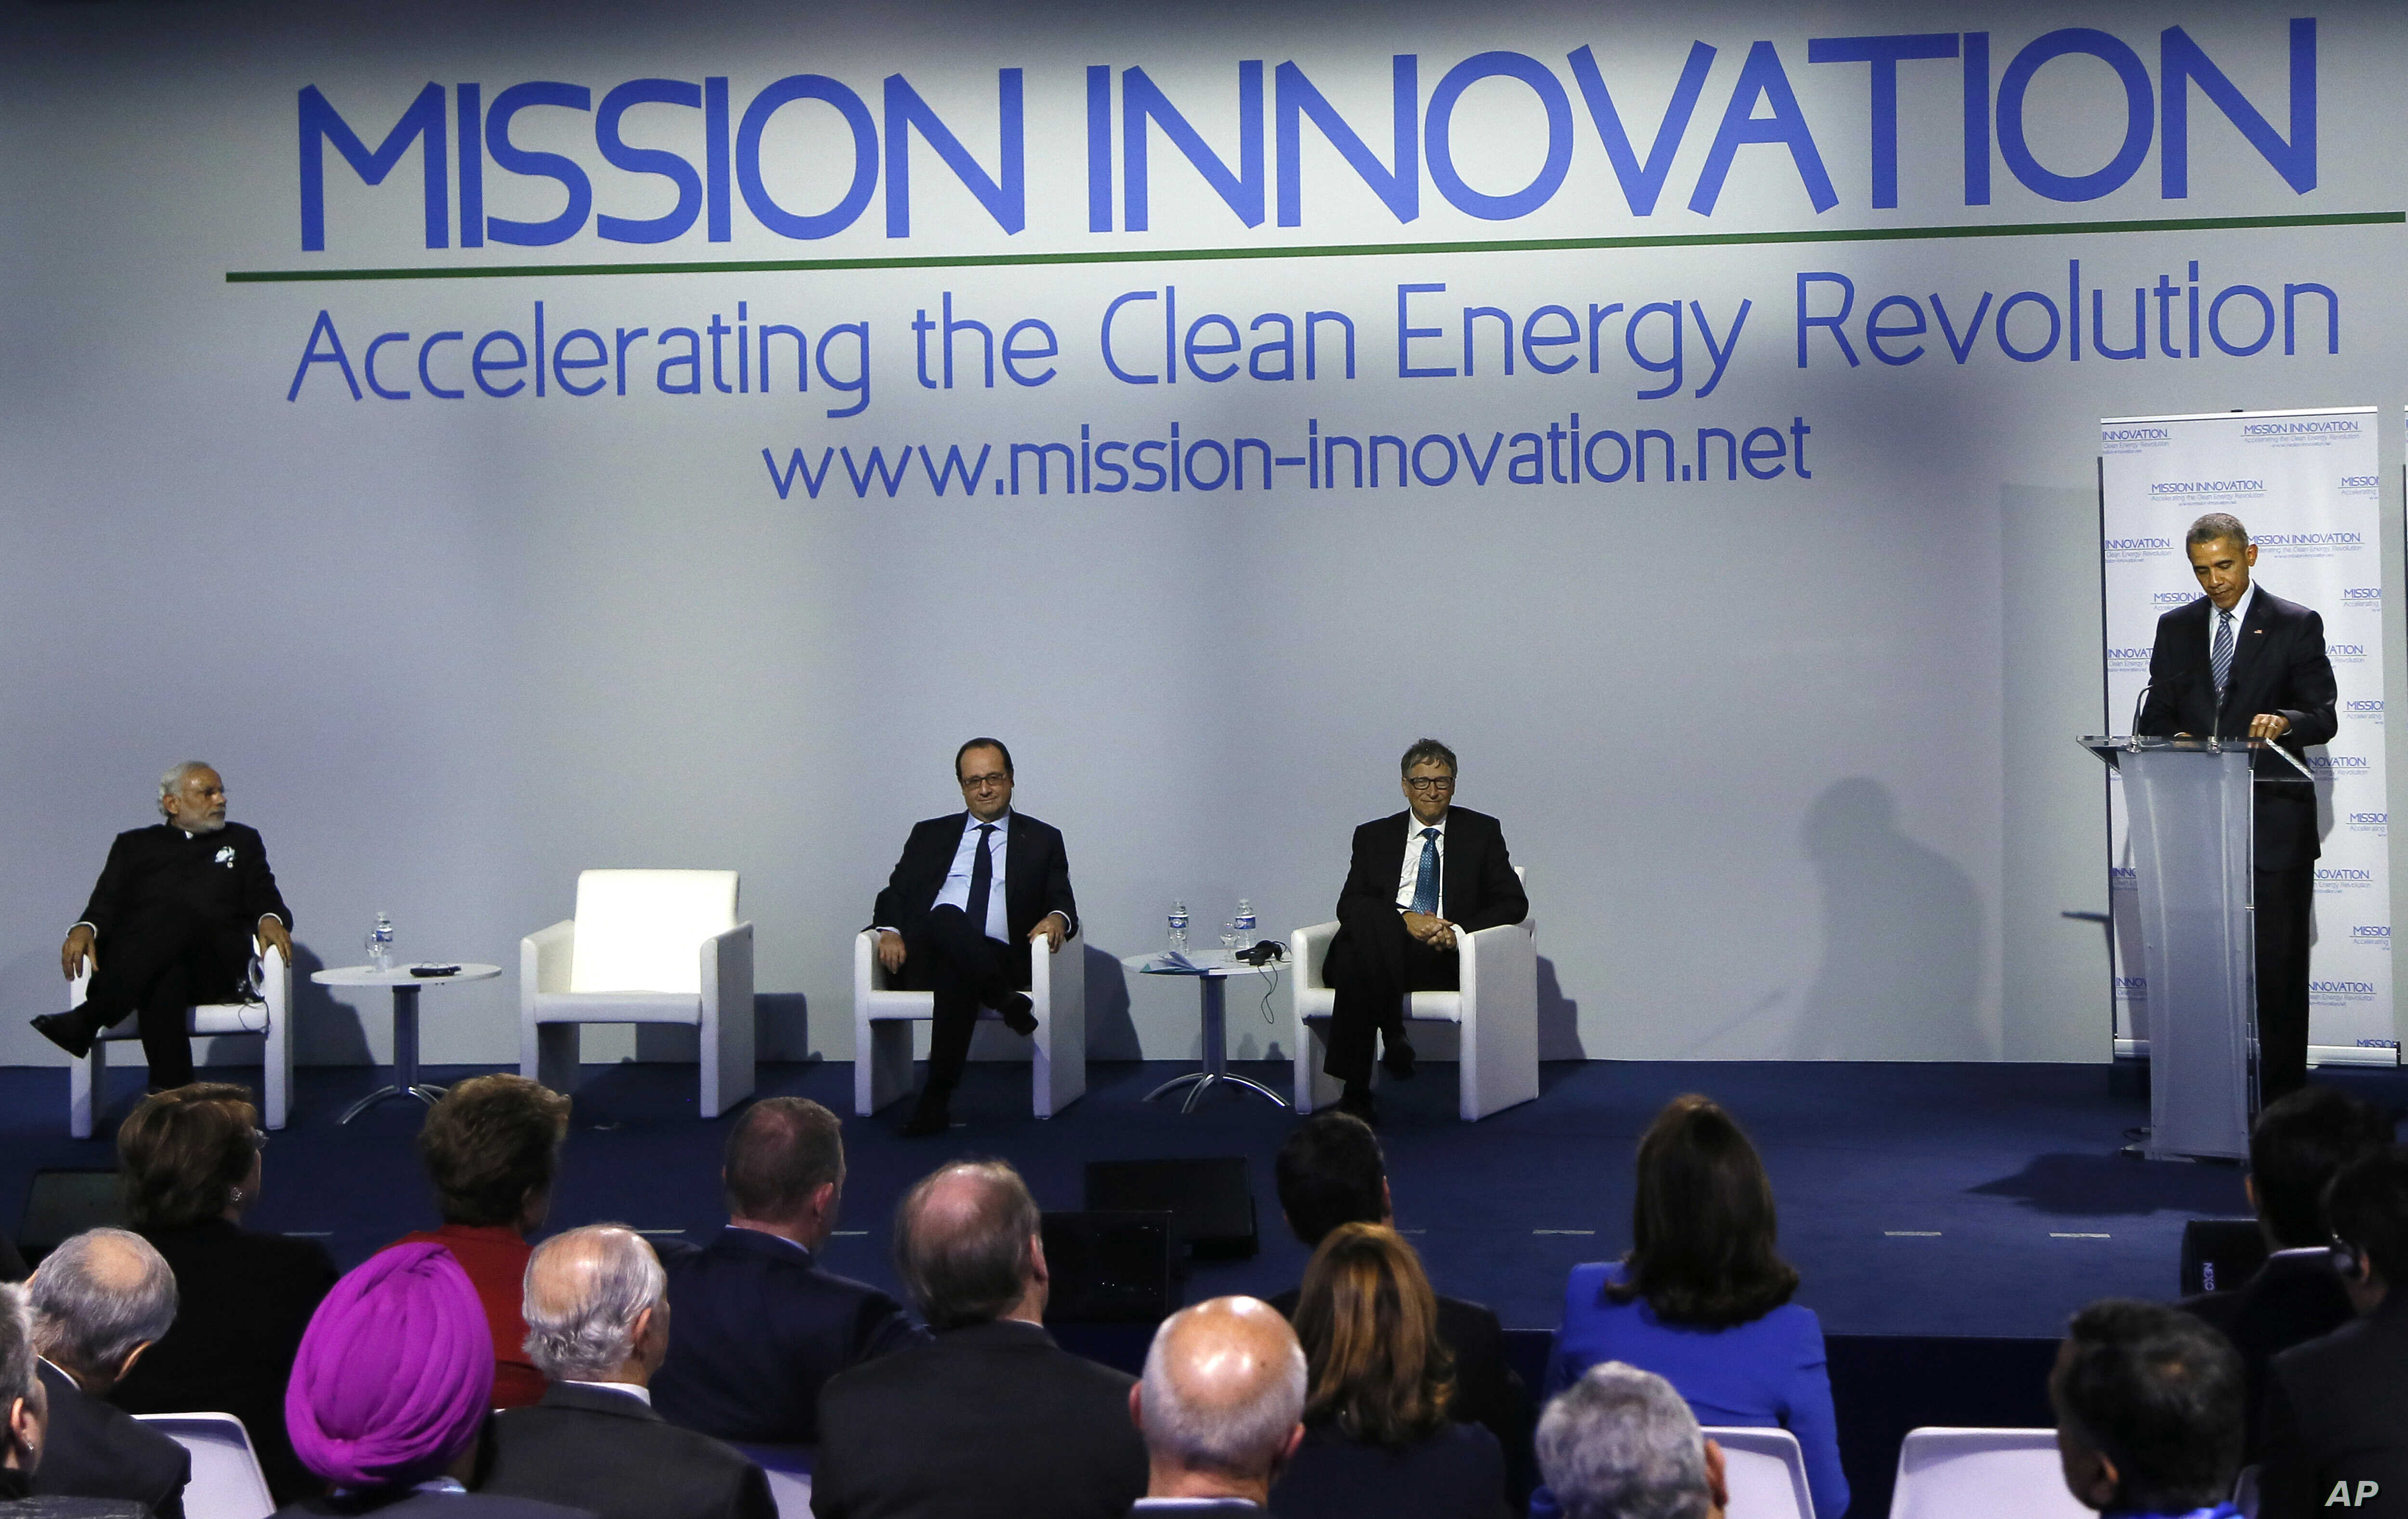 Indian Prime Minister Narendra Modi (L) French President Francis Hollande (2-L) and Microsoft founder Bill Gates listen to U.S President Barack Obama ahead of the 'Mission Innovation: Accelerating the Clean Energy Revolution' meeting at the U.N. Clim...